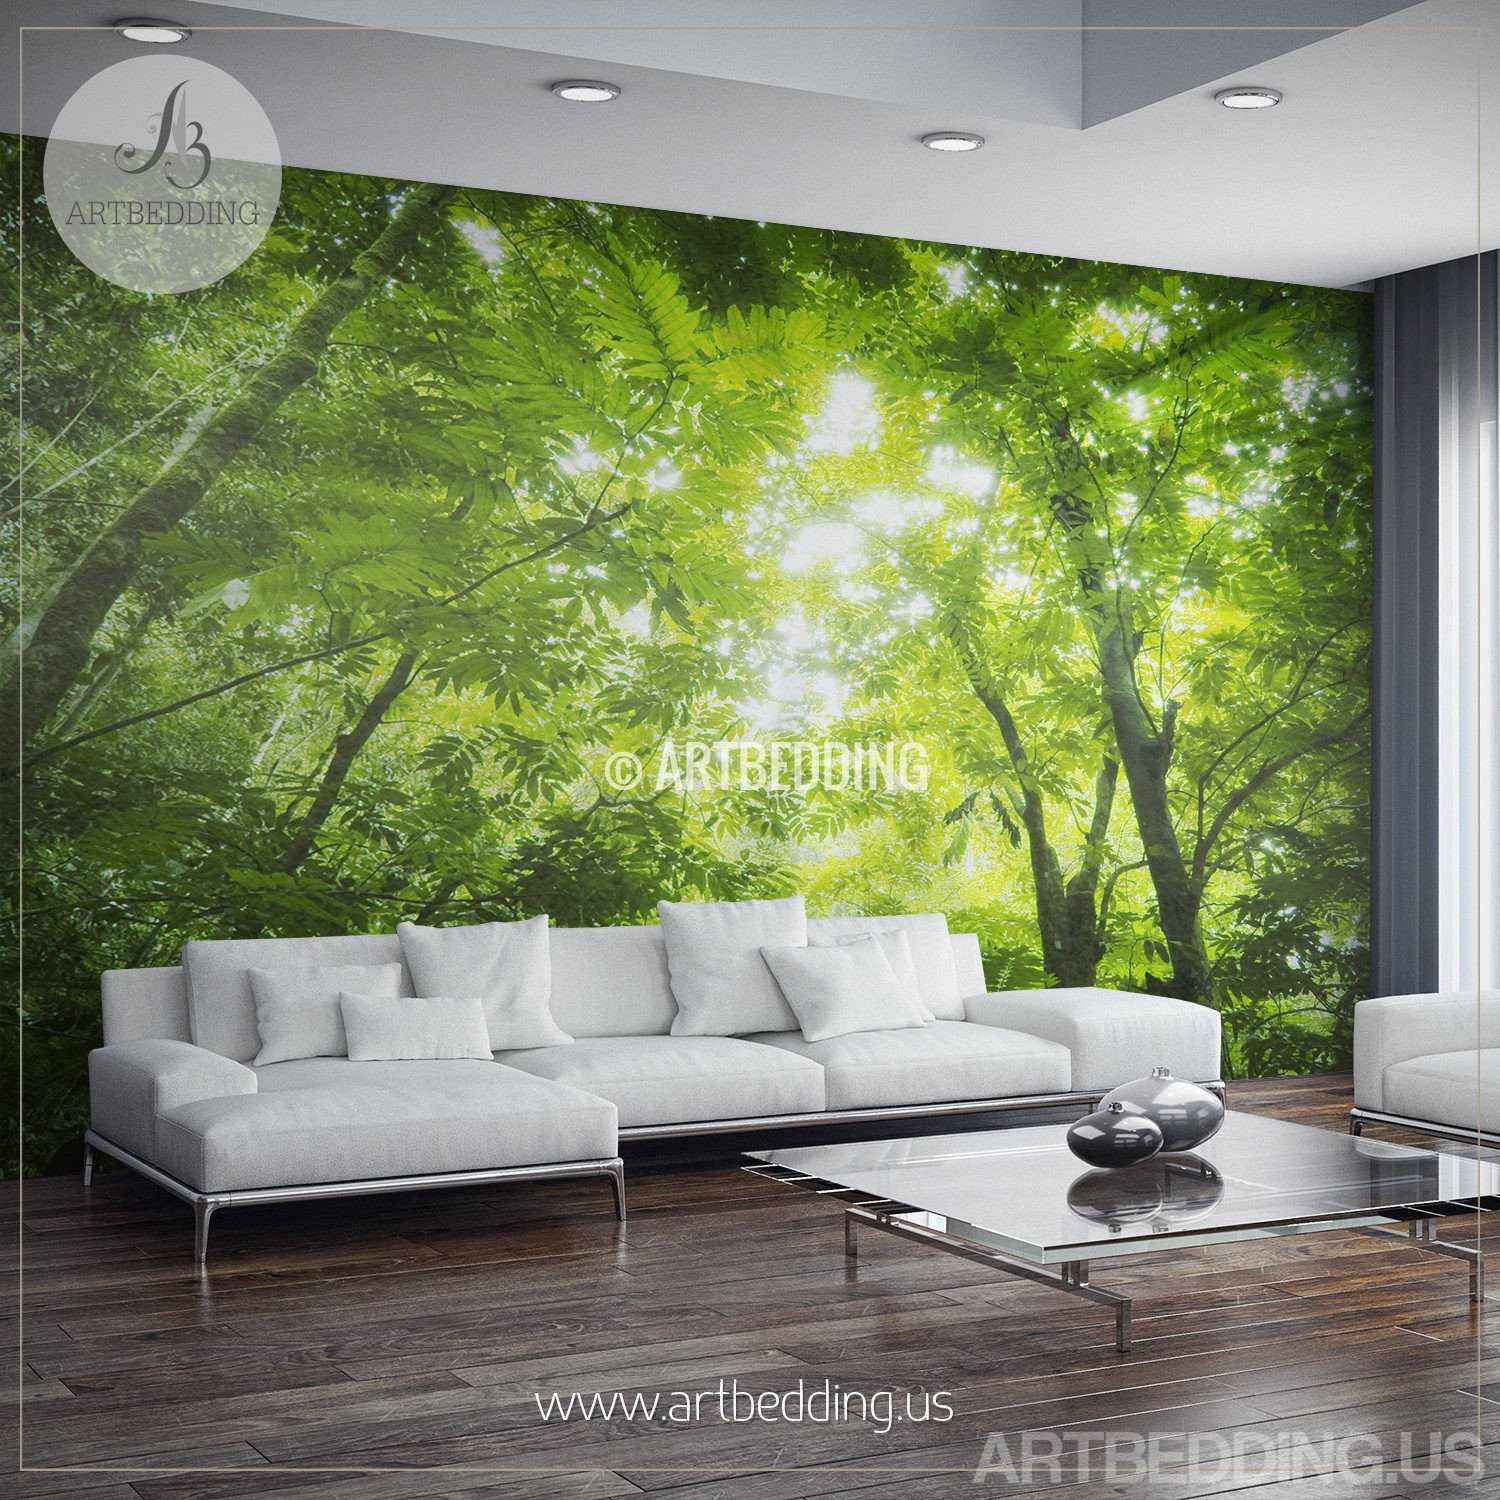 ... Green Forest Wall Mural, Photo Mural Sunbeam Through Green Forest  Treetop Self Adhesive Peel ...